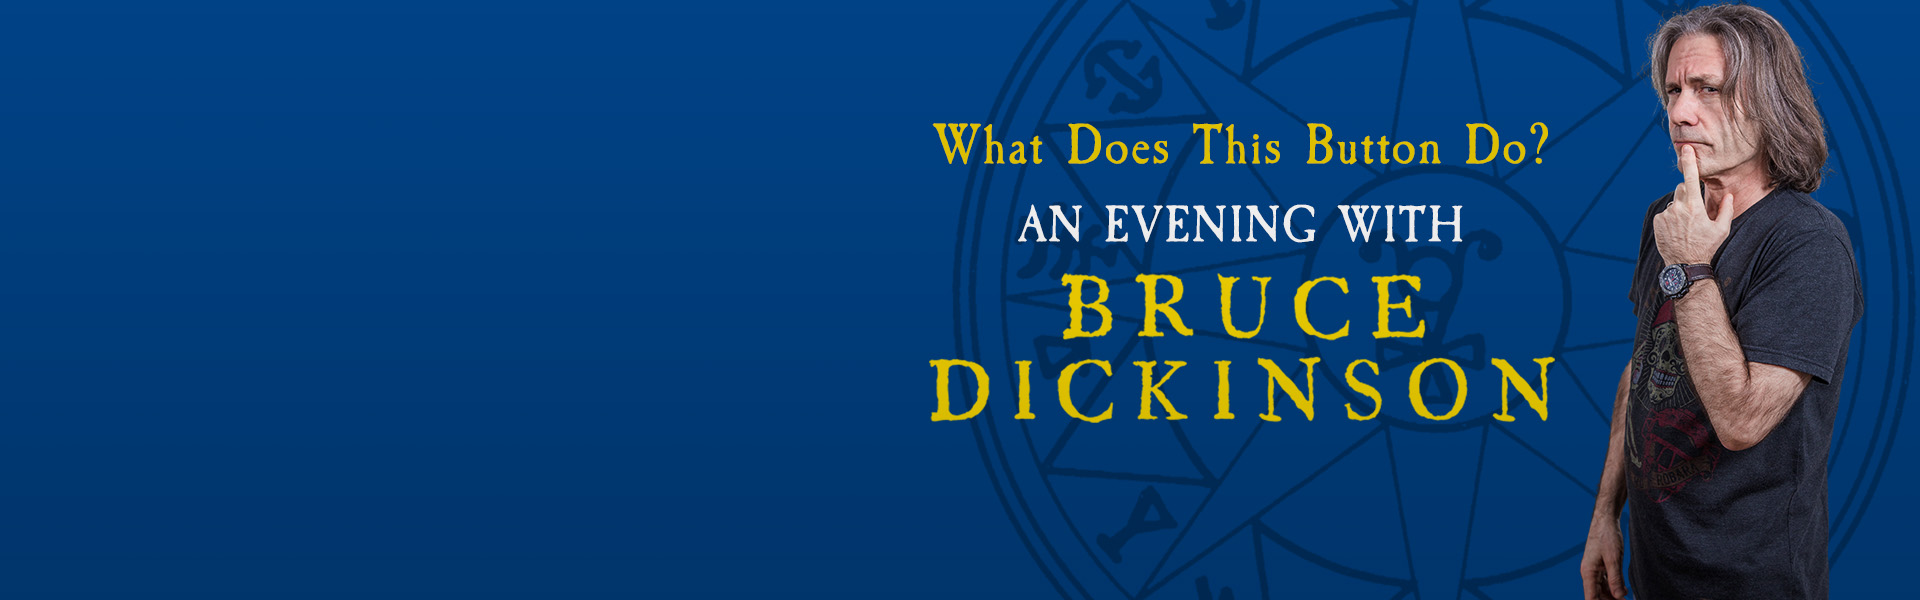 An Evening with Bruce